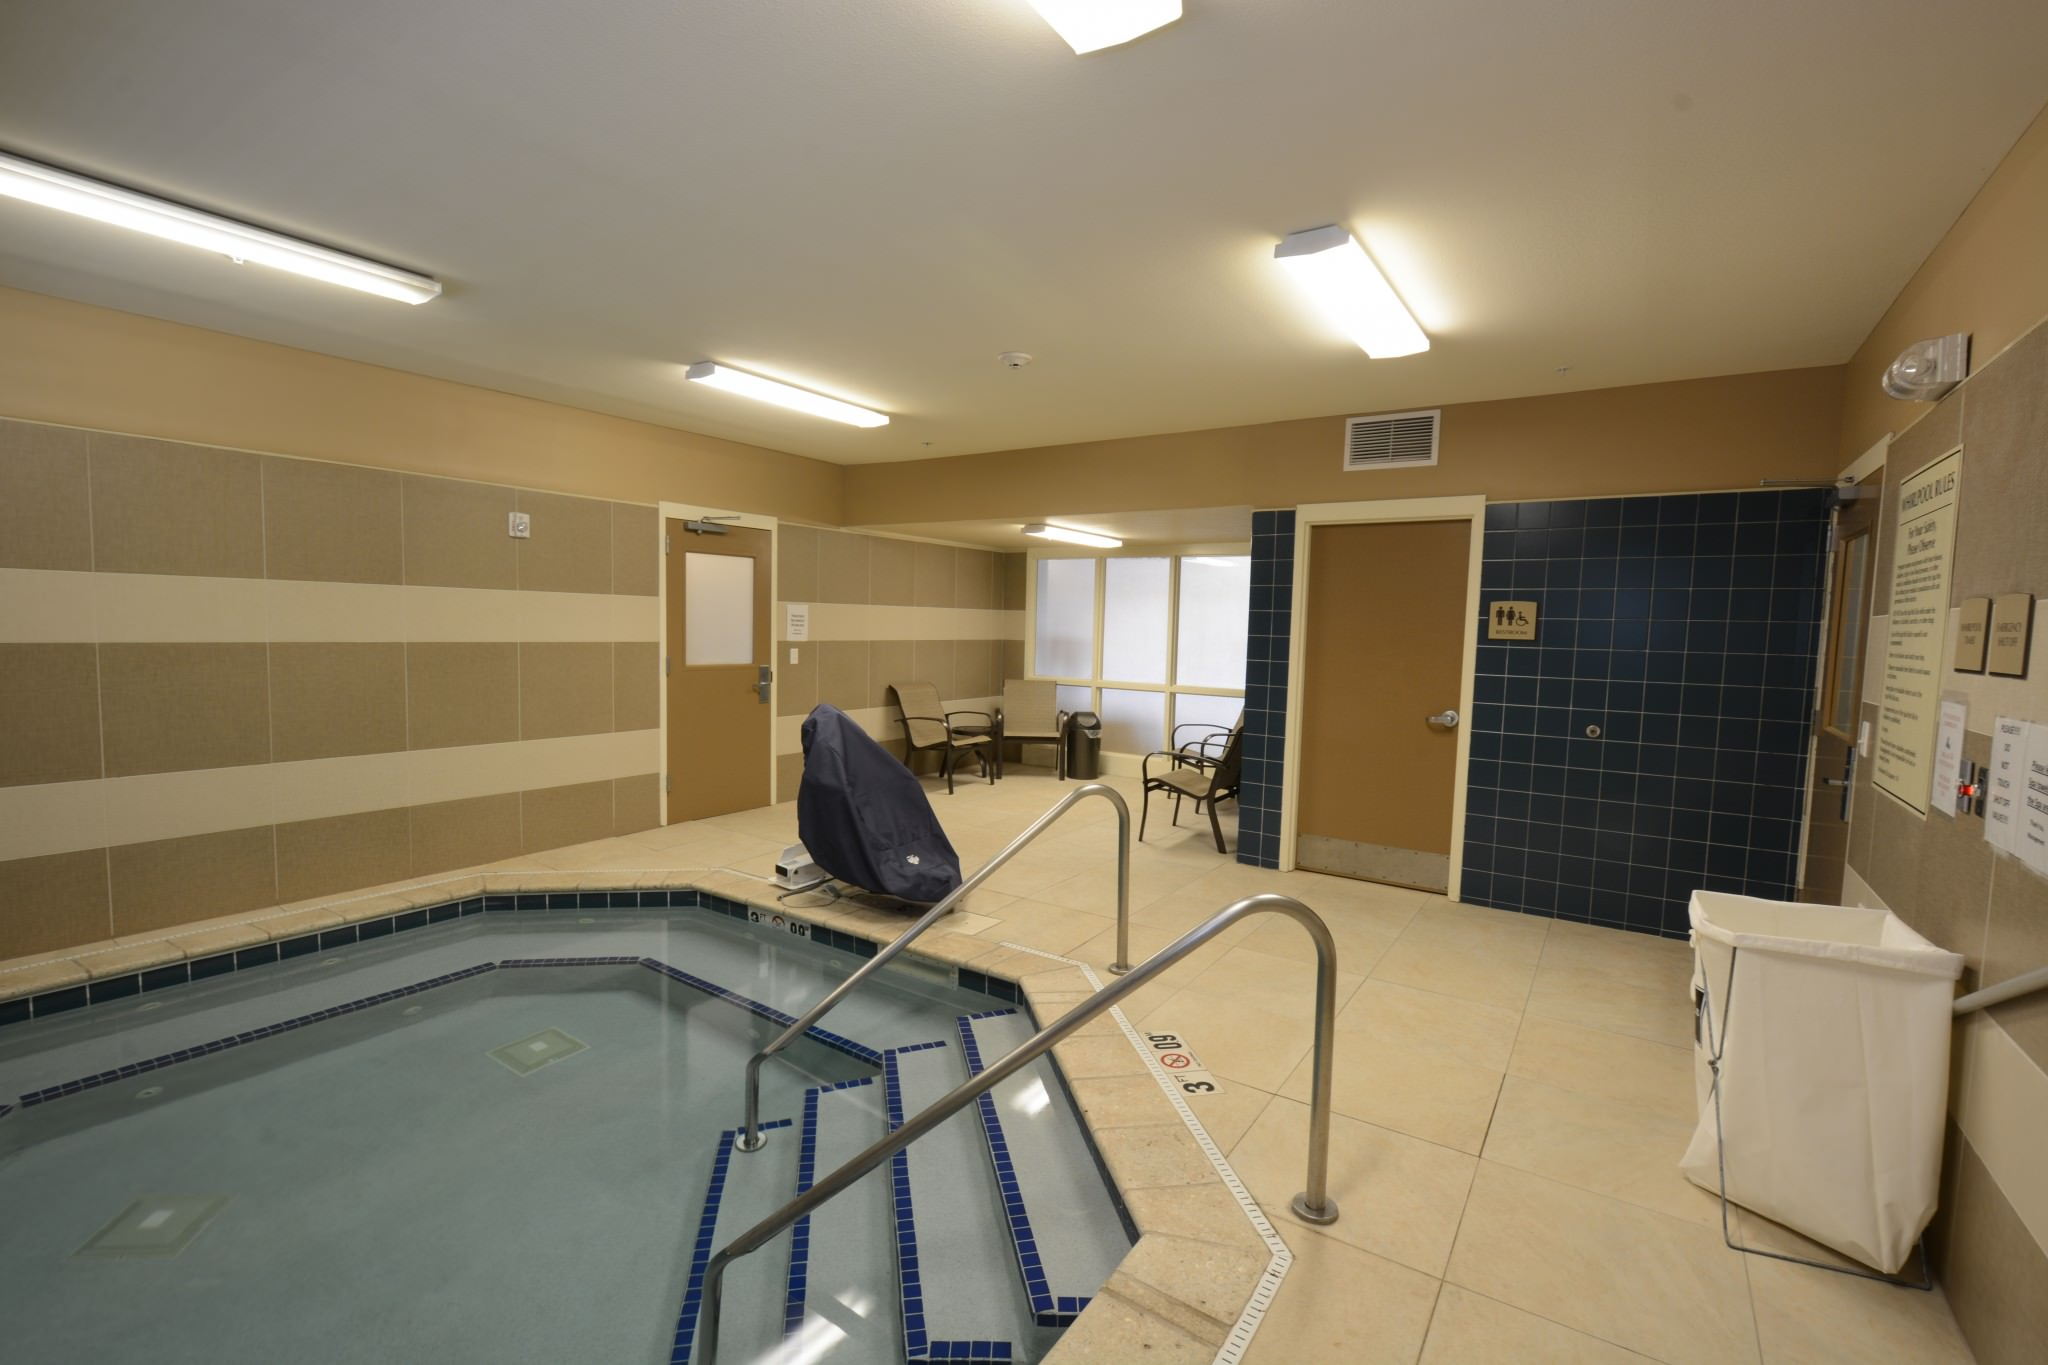 HomStay pool room